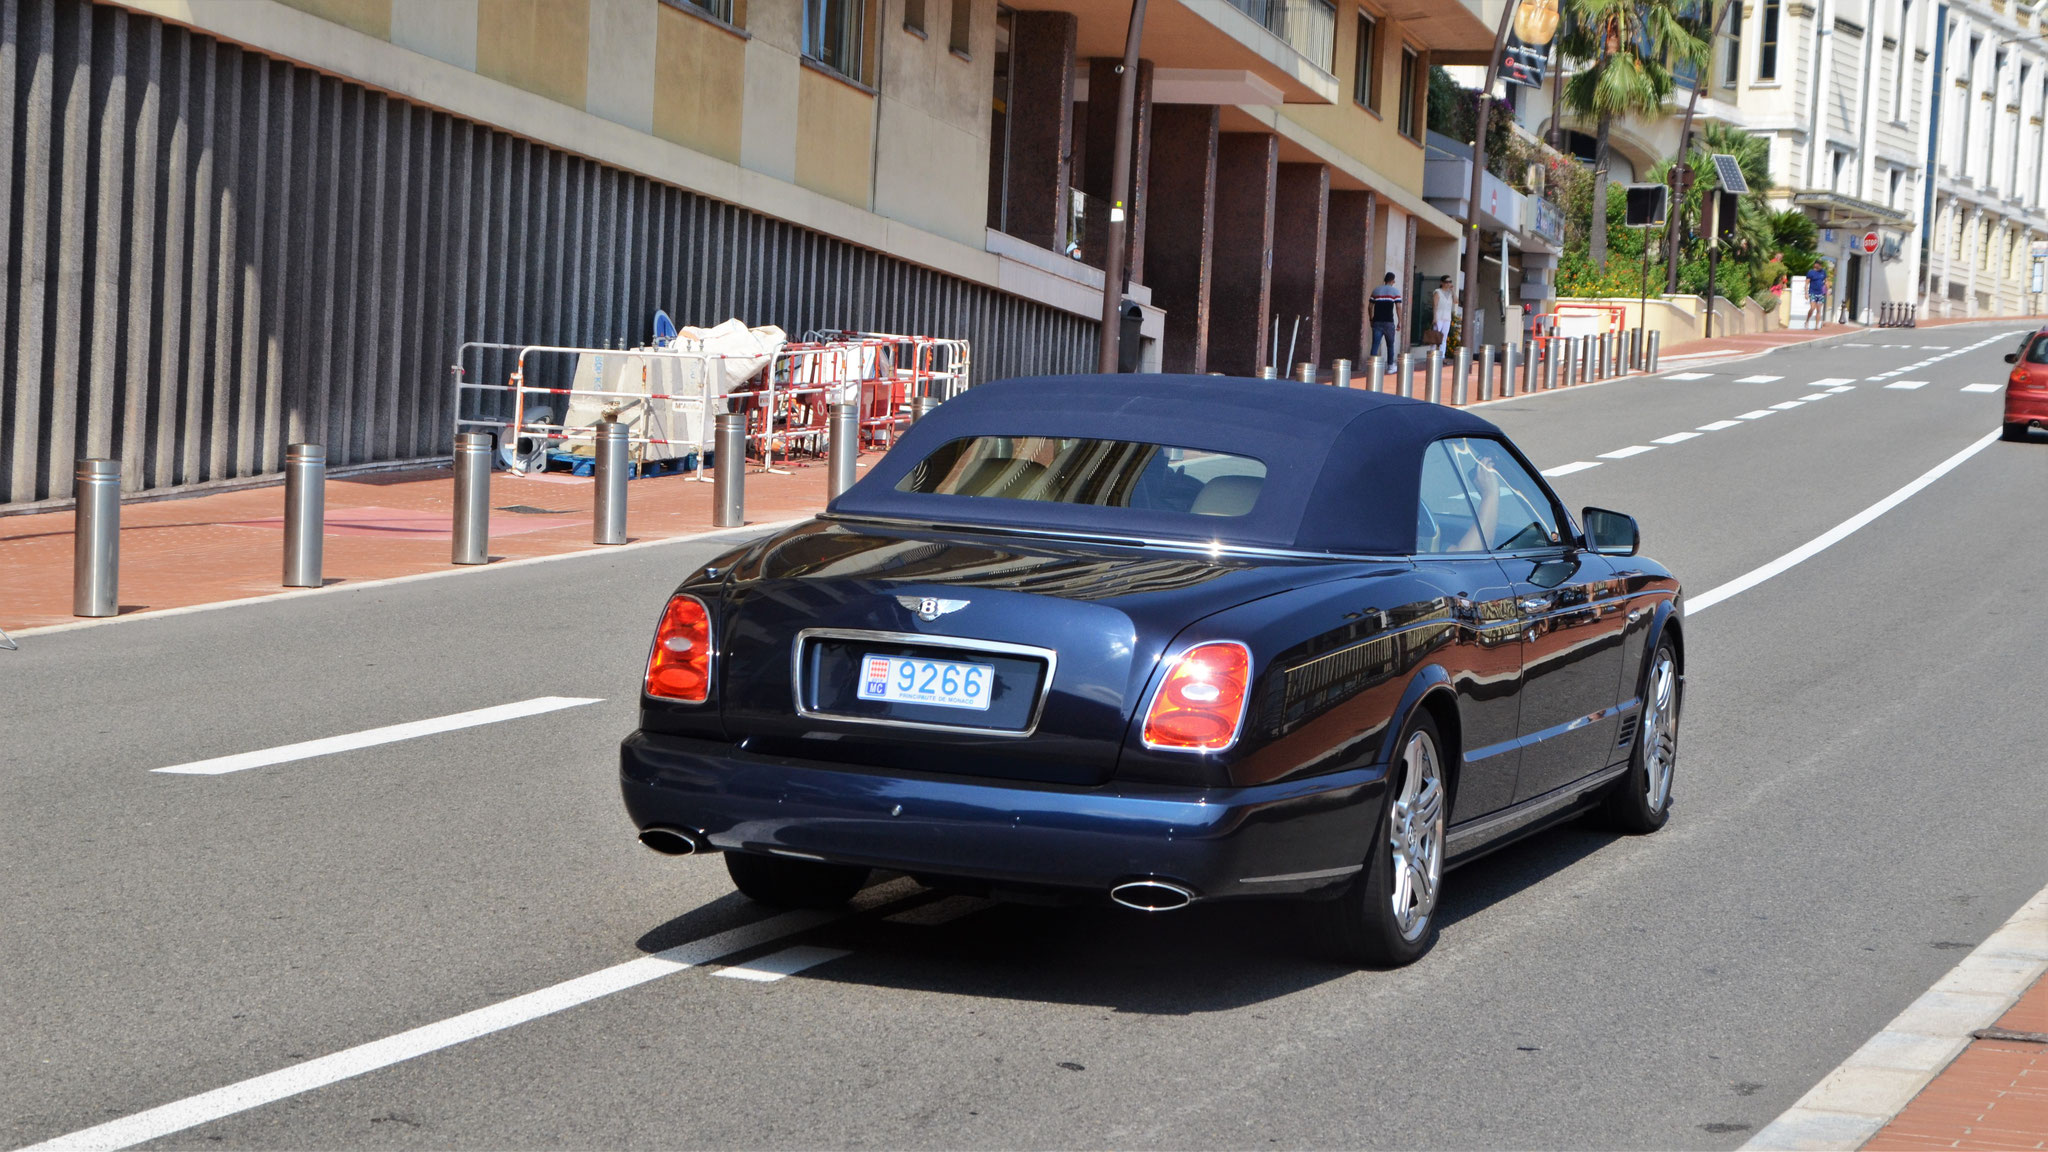 Bentley Azure - 9266 (MC)